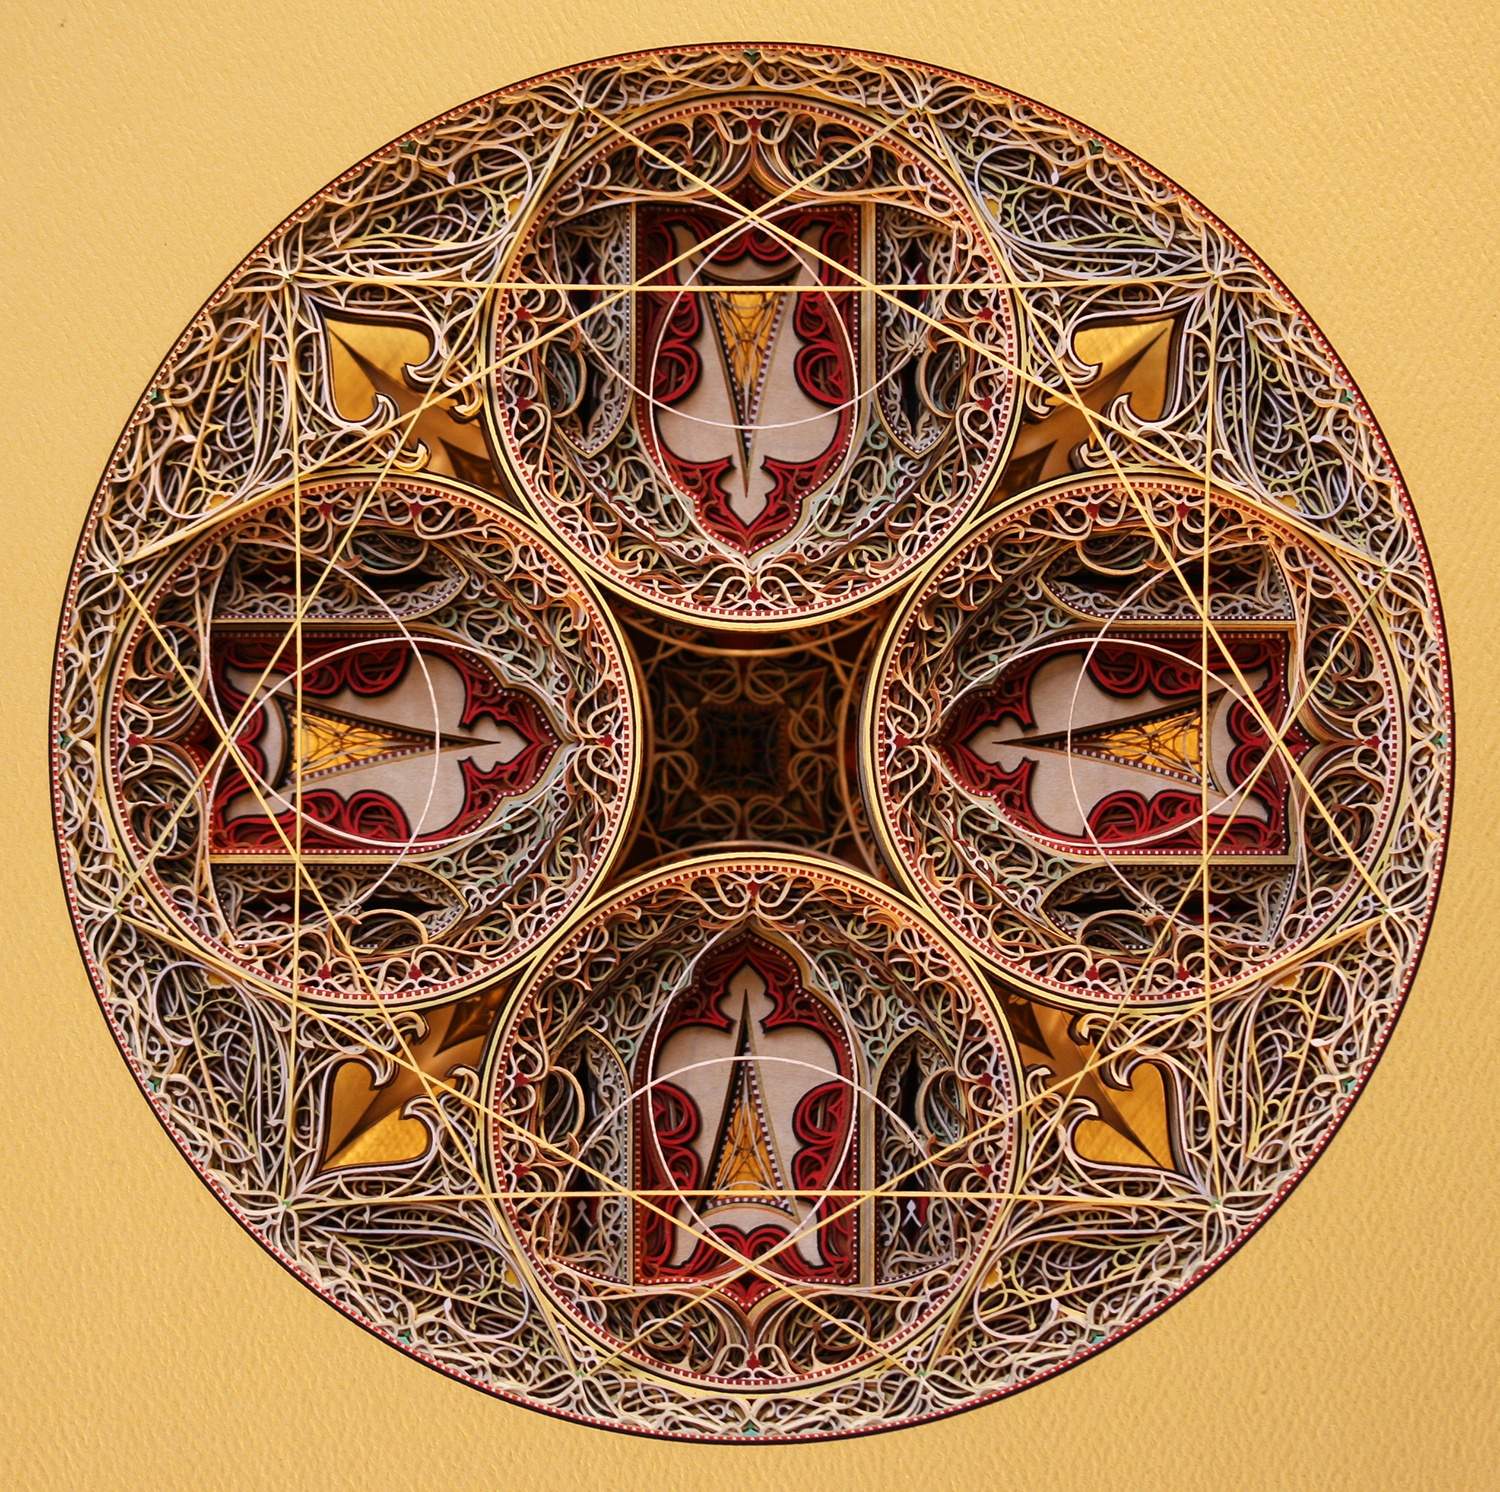 intricate-stained-glass-windows-colorful-laser-cut-paper-eric-standley-argos-strictlypaper